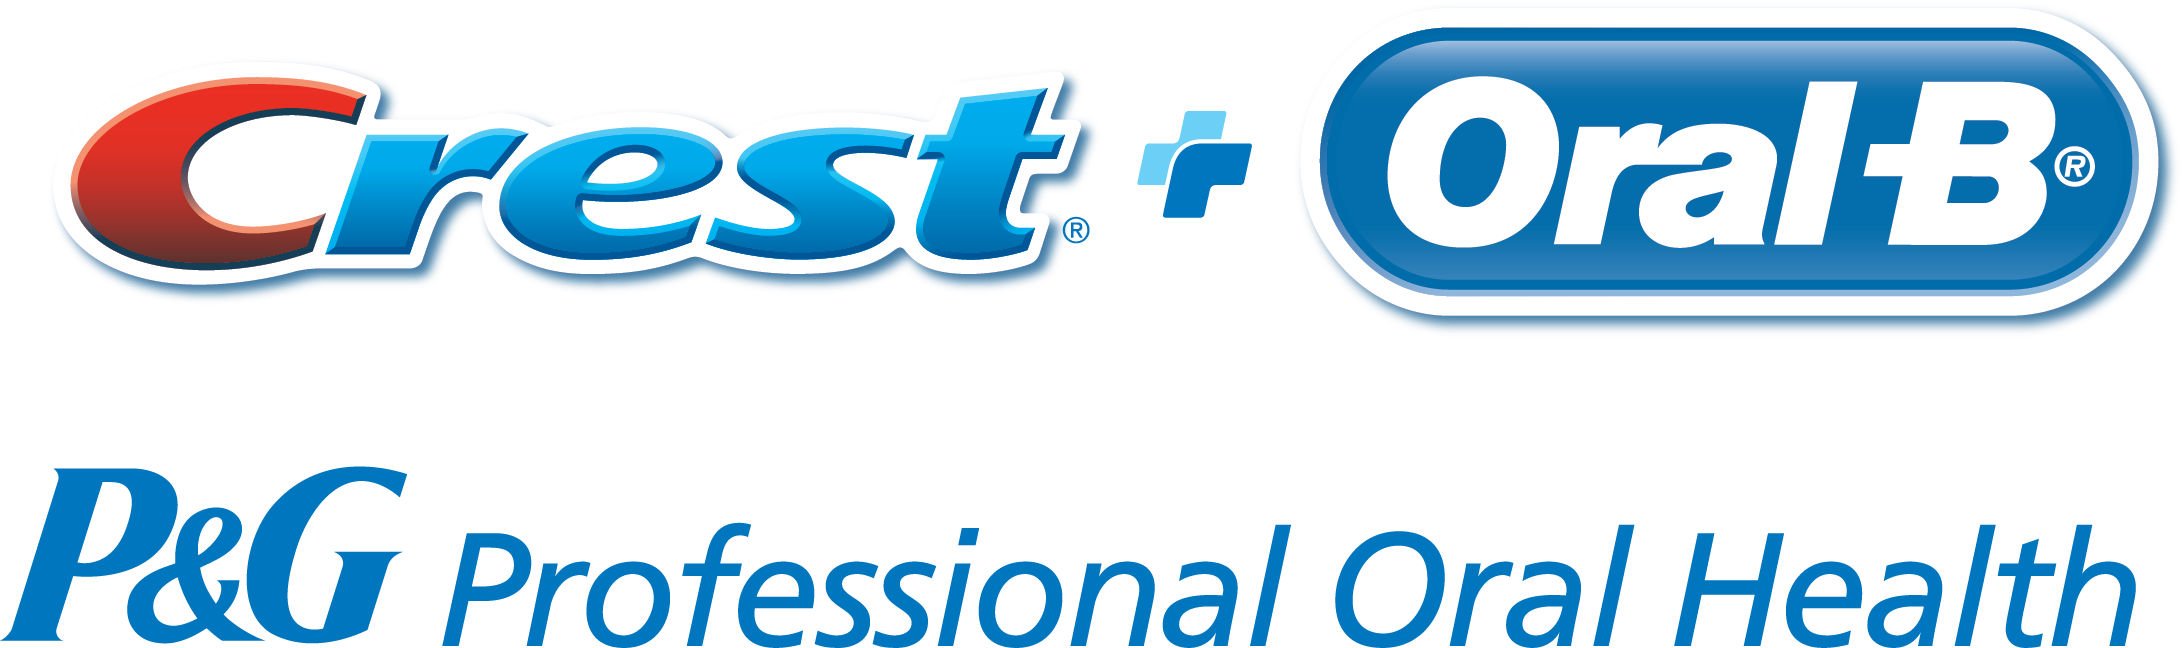 Crest + Oral B, P&G Professional Oral Health Logo